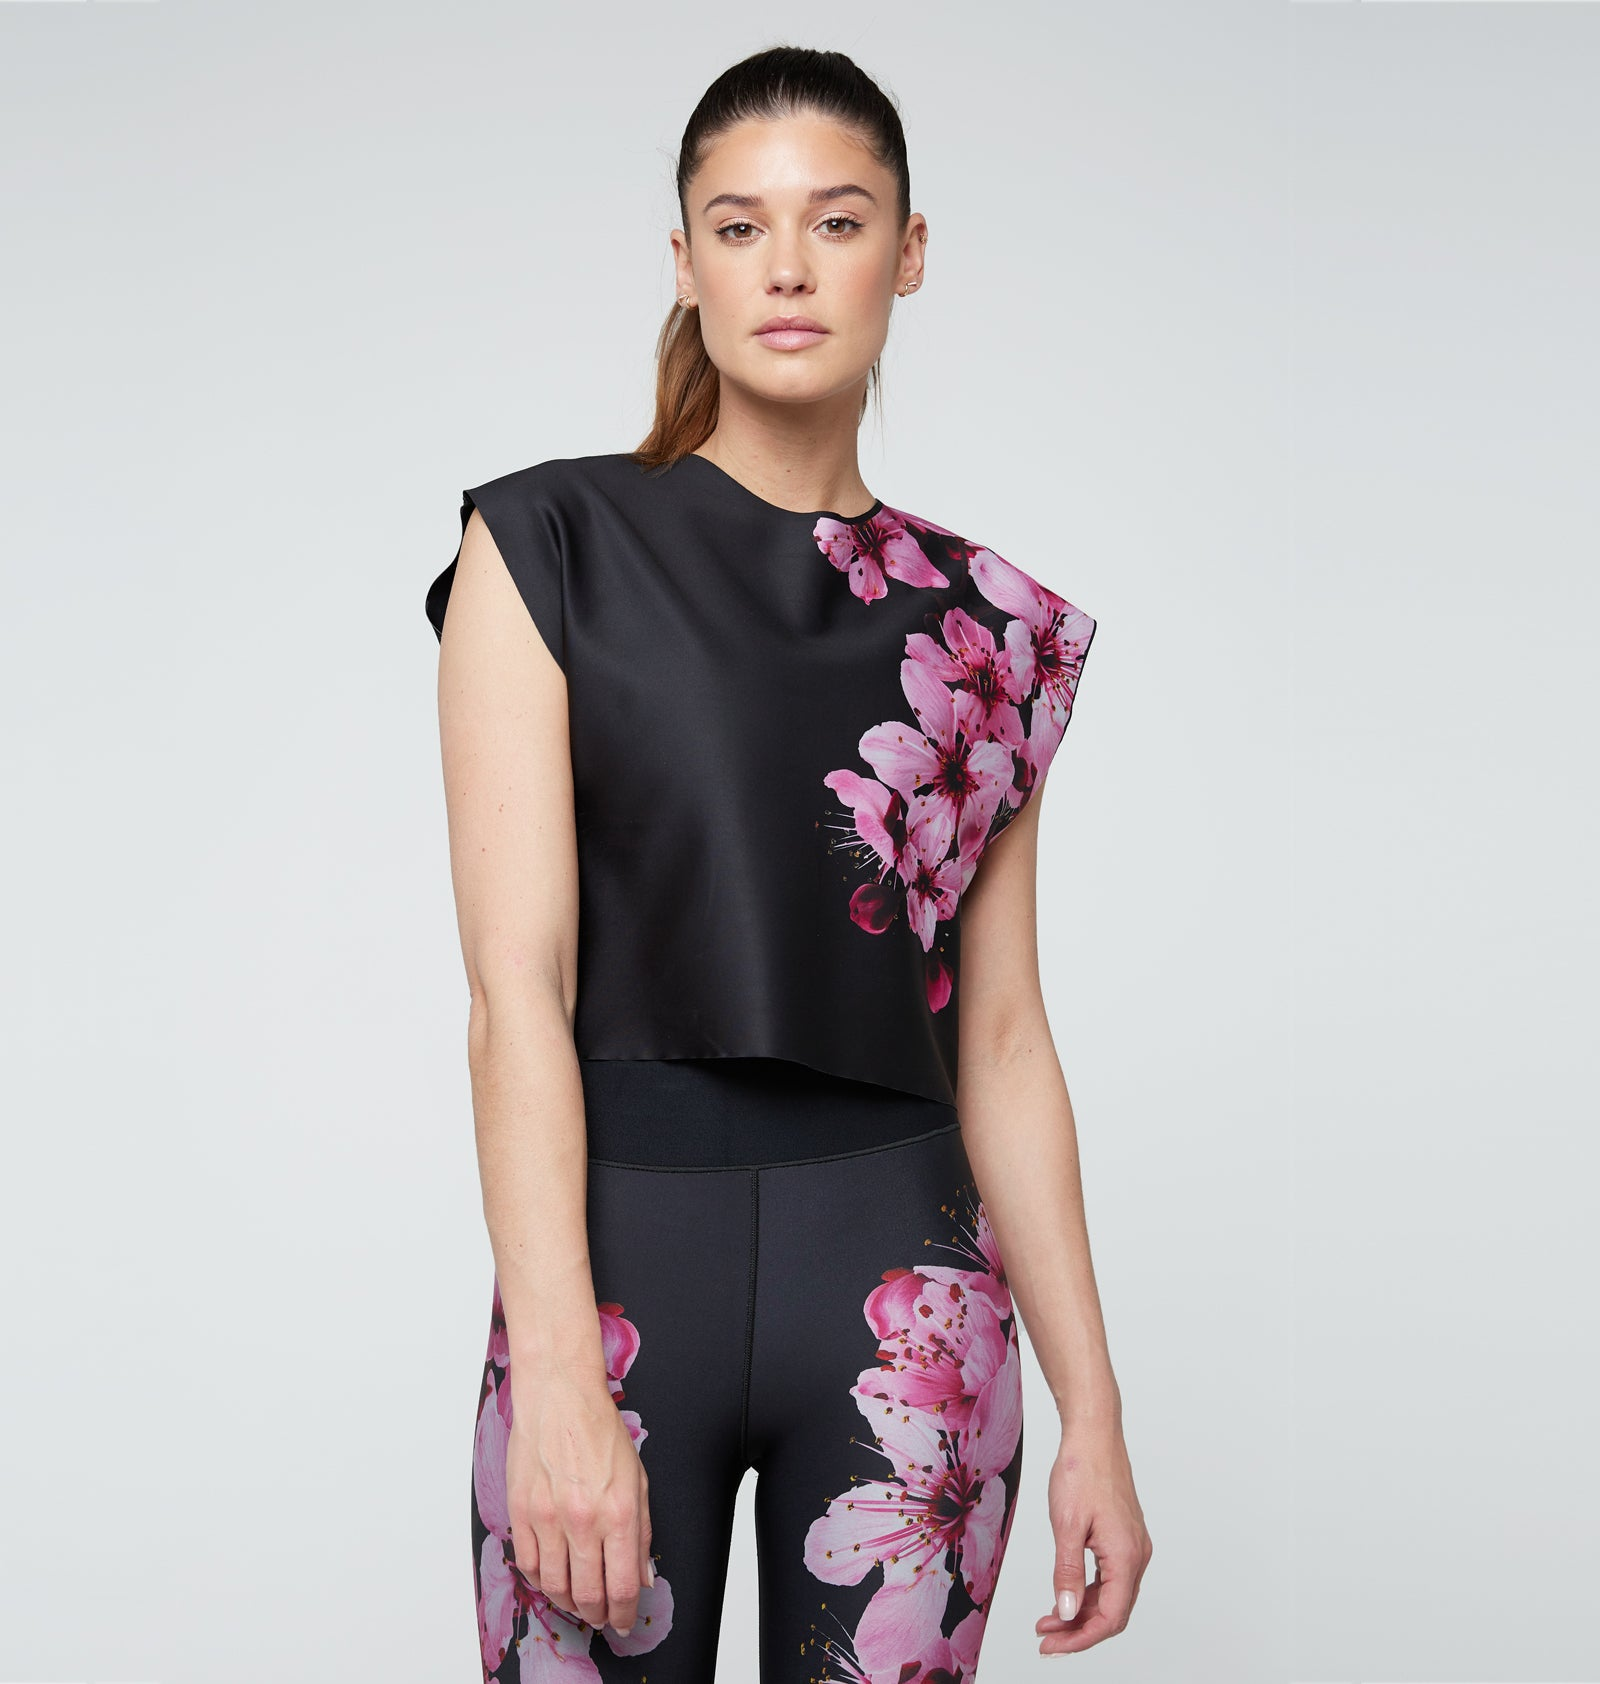 Sakura Izar Top | An Ultracor Exclusive*